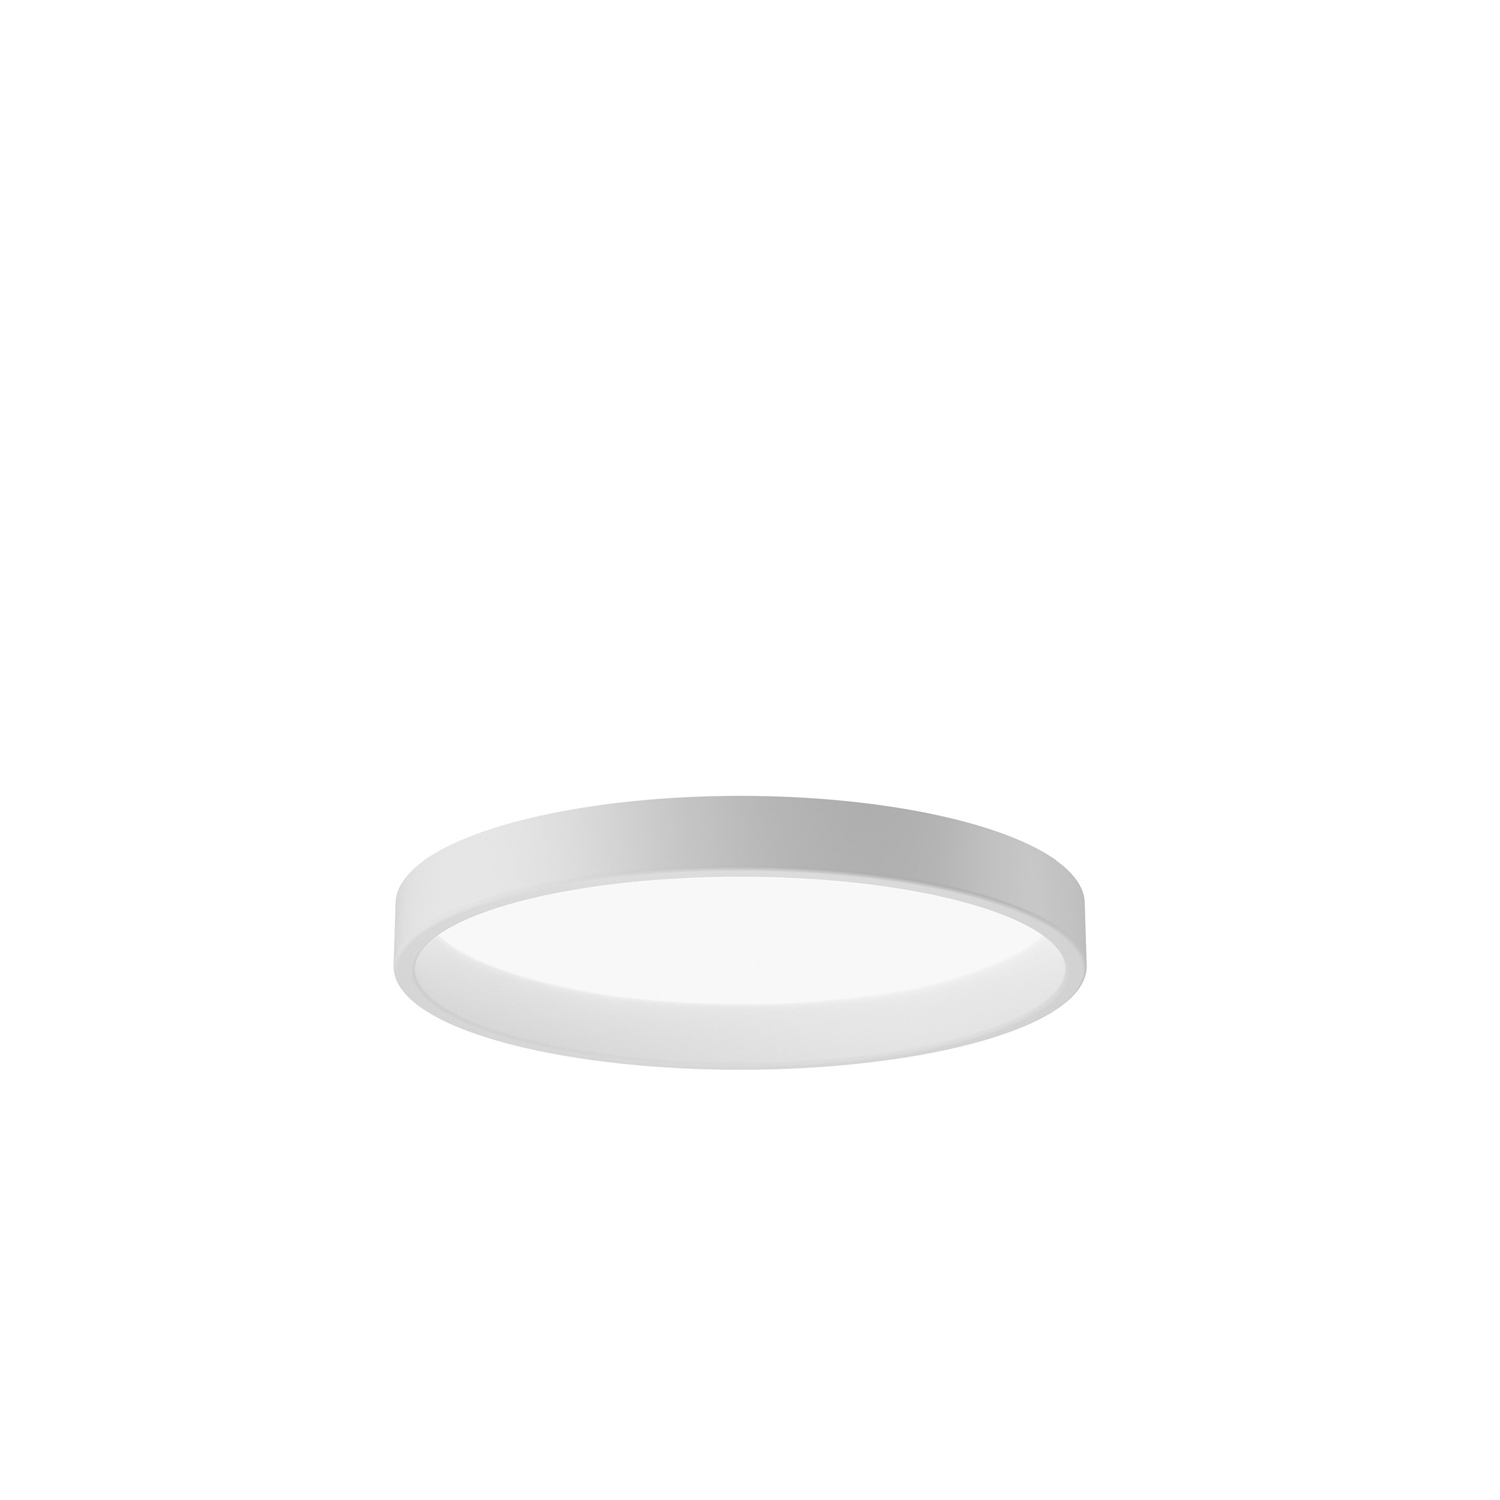 LP Circle Semi-inset Ceiling Light - The fixture emits diffuse light via a high-efficiency acrylic diffuser. The diffuser, which is encircled by a voluminous coloured or white ring, is hidden when viewed from low angles. Angling the inner side of the ring 5° creates comfortable and decorative graduation of the light from the diffuser. With two diameters and four different installation options, the lights series can be used for a wide range of applications. | Matter of Stuff